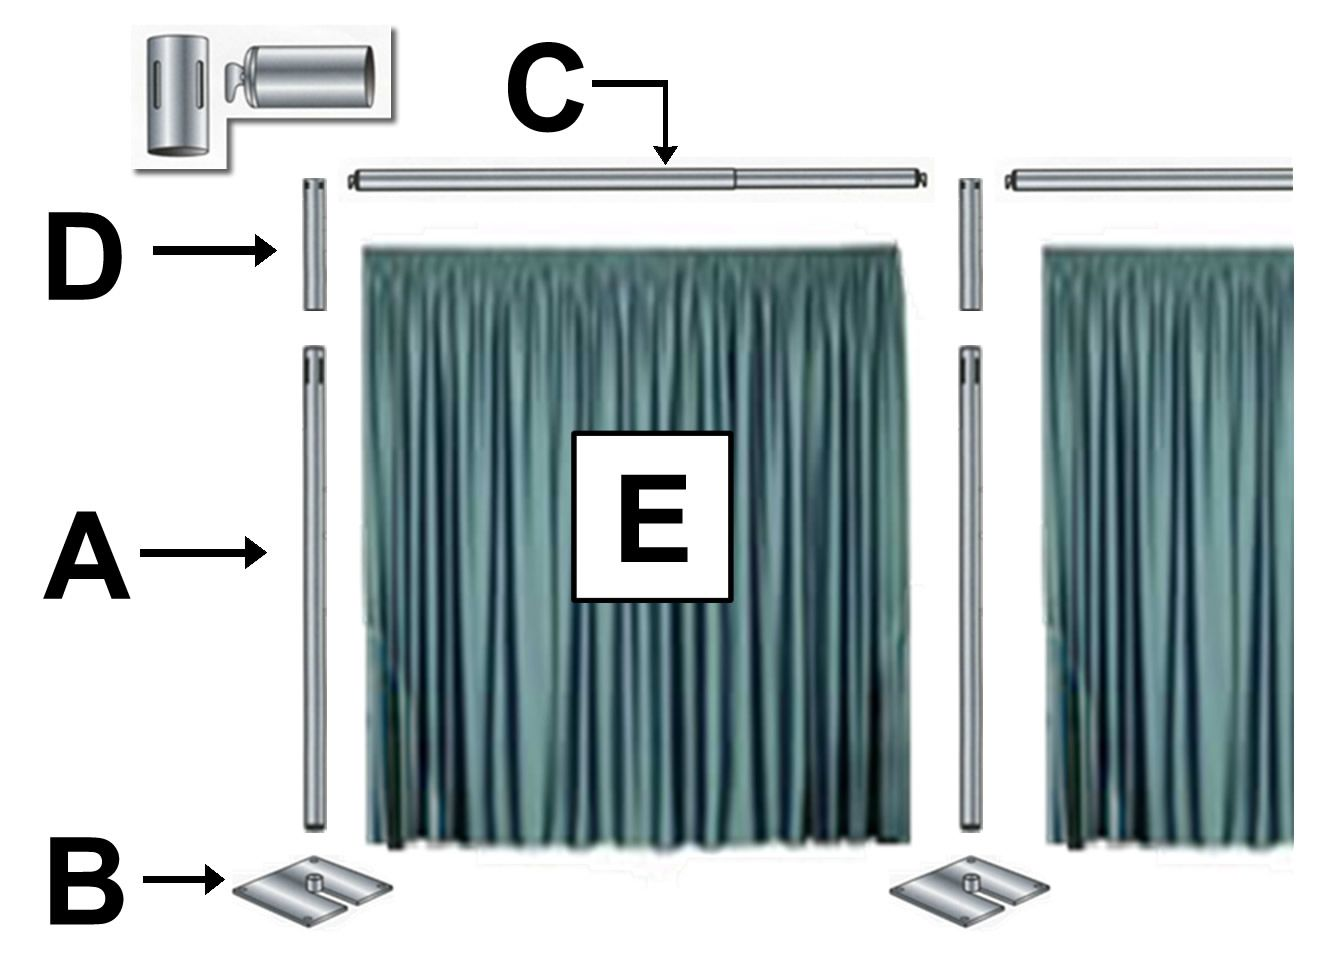 com manufacturers drape low bacdrop alibaba cheap suppliers pipe kits at drapes showroom and